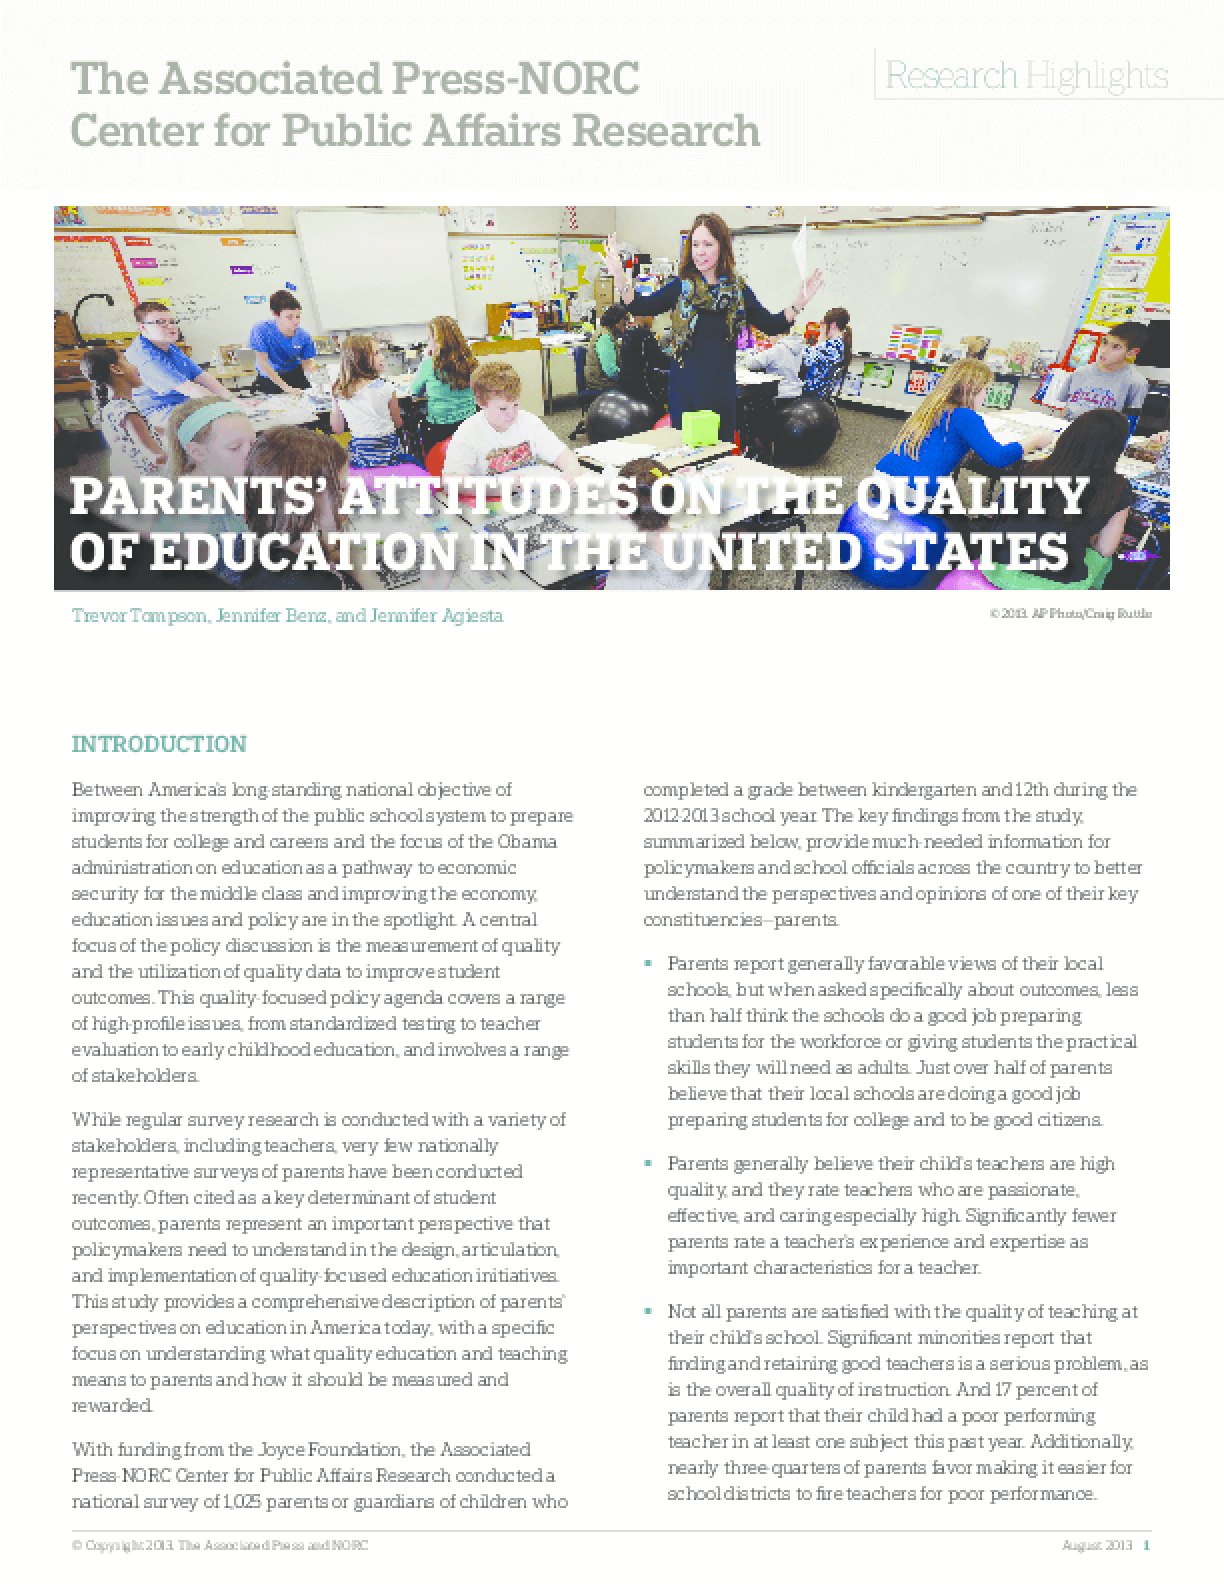 Parents' Attitudes on the Quality of Education in the United States